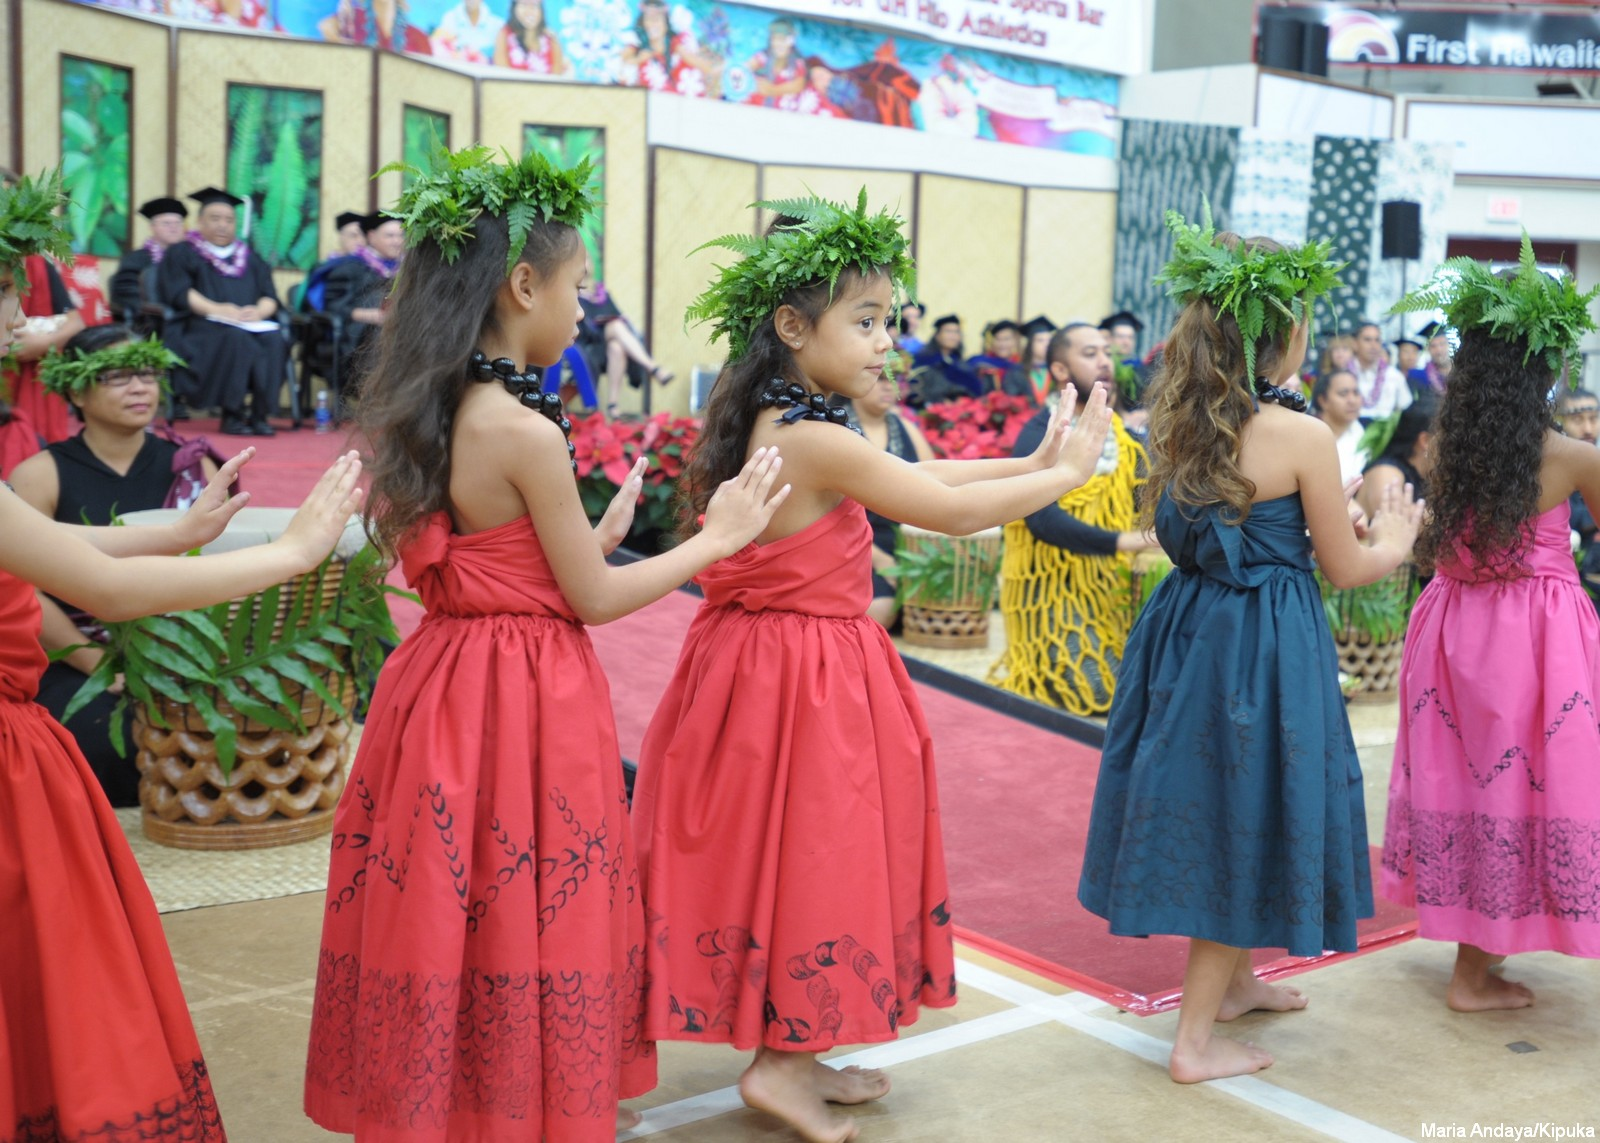 Keiki dancing at Commencement-- they are in red and blue dresses with kapa print, hands gesturing, fern head leis. Pahu drummer and university officials sit on dais in background.